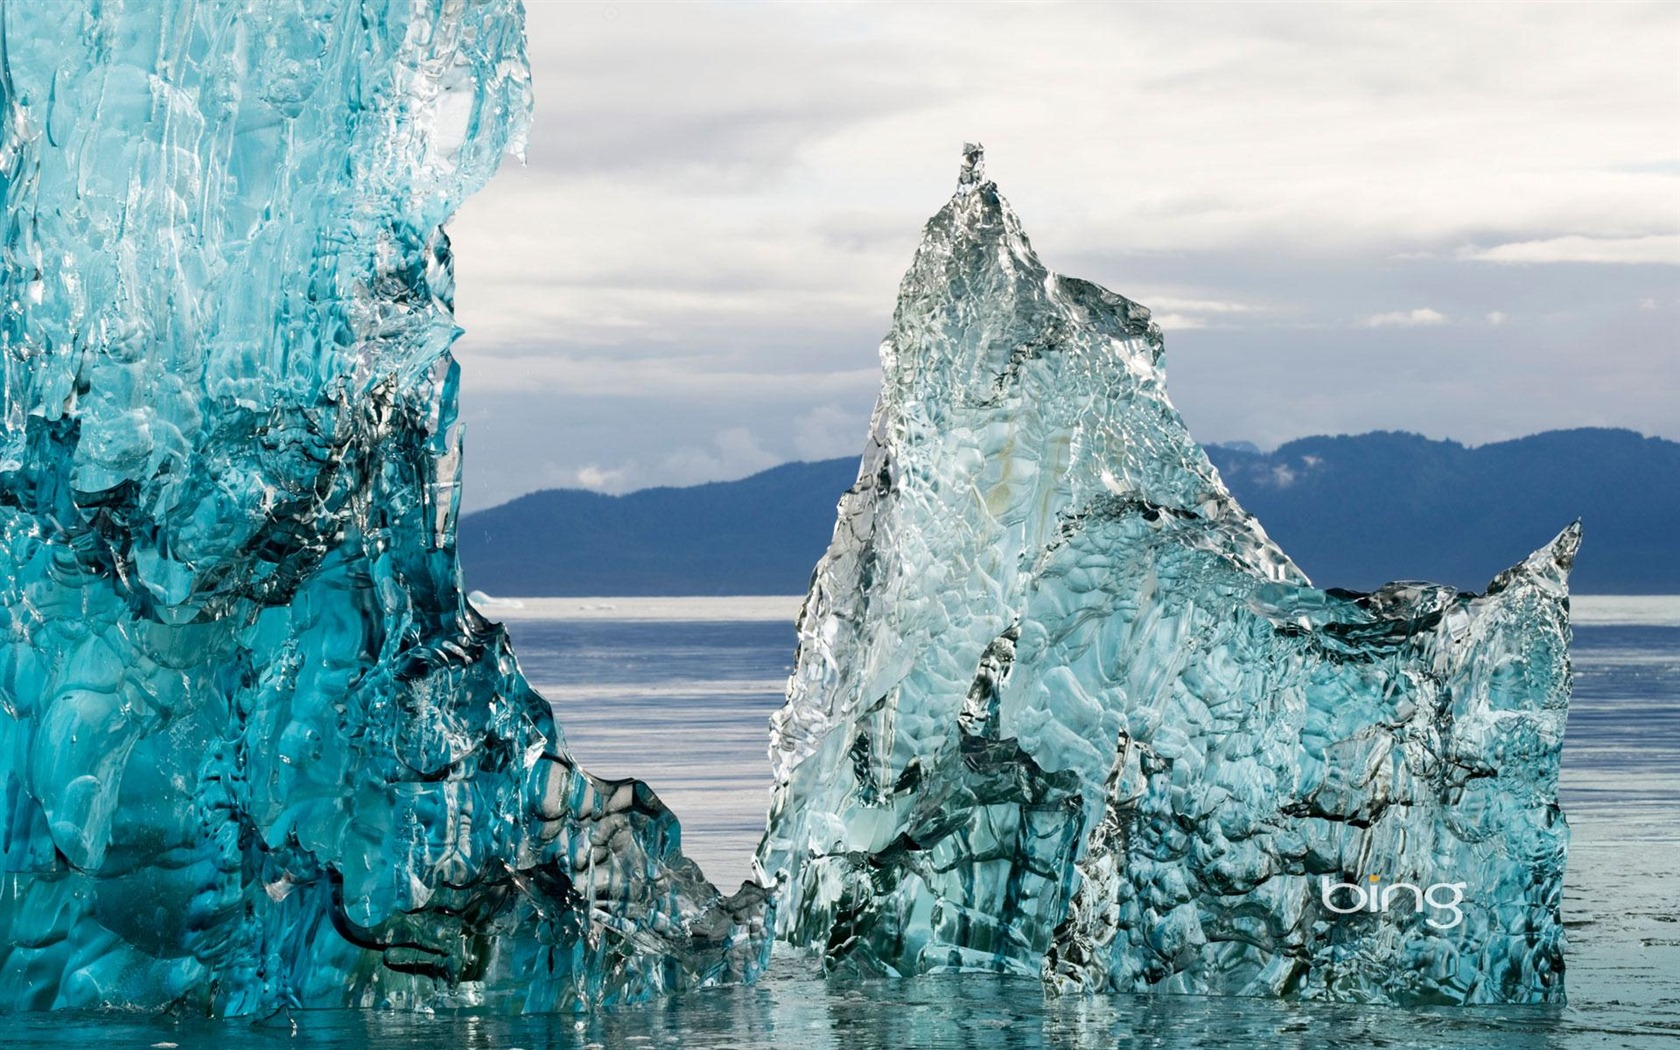 Bing Themes glacial features widescreen HD wallpaper   1680x1050 1680x1050